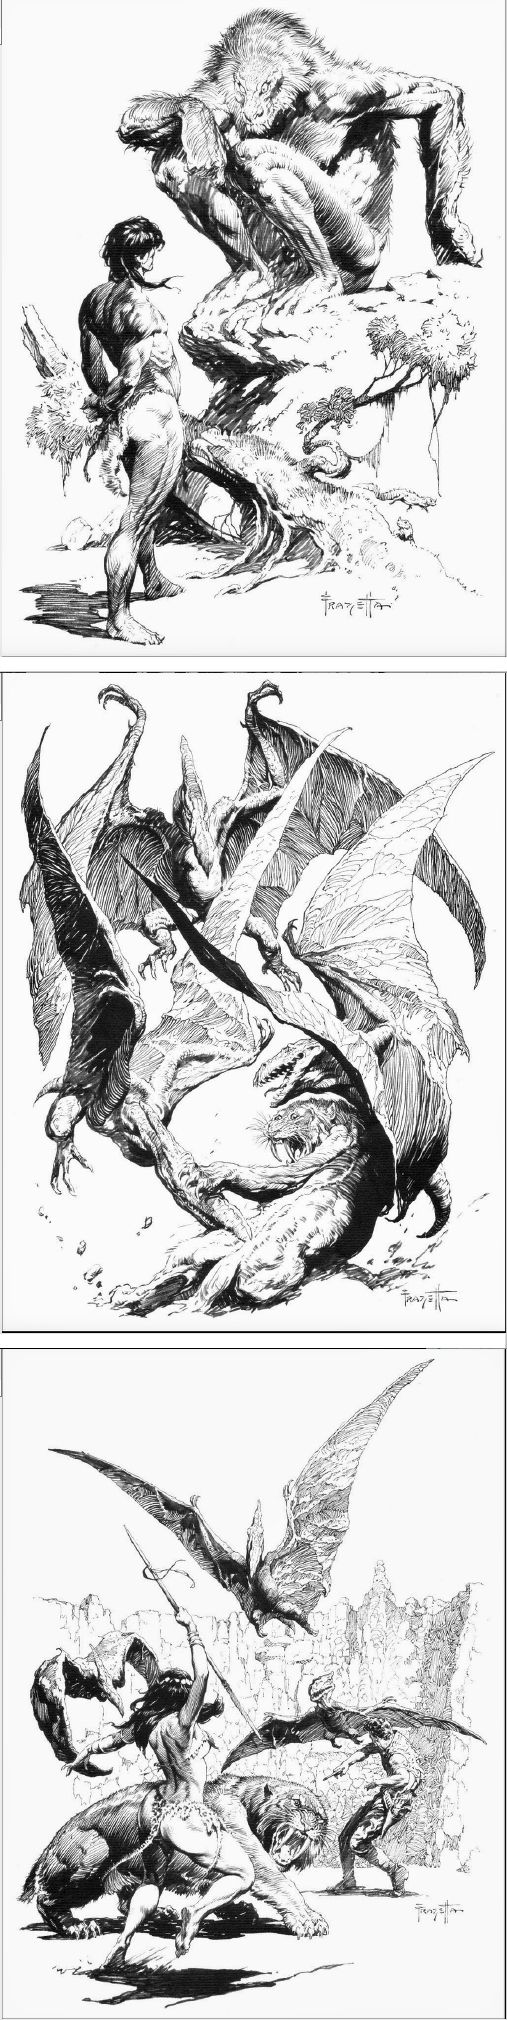 FRANK FRAZETTA - At the Earths Core - Creatures II - B/W Sketches